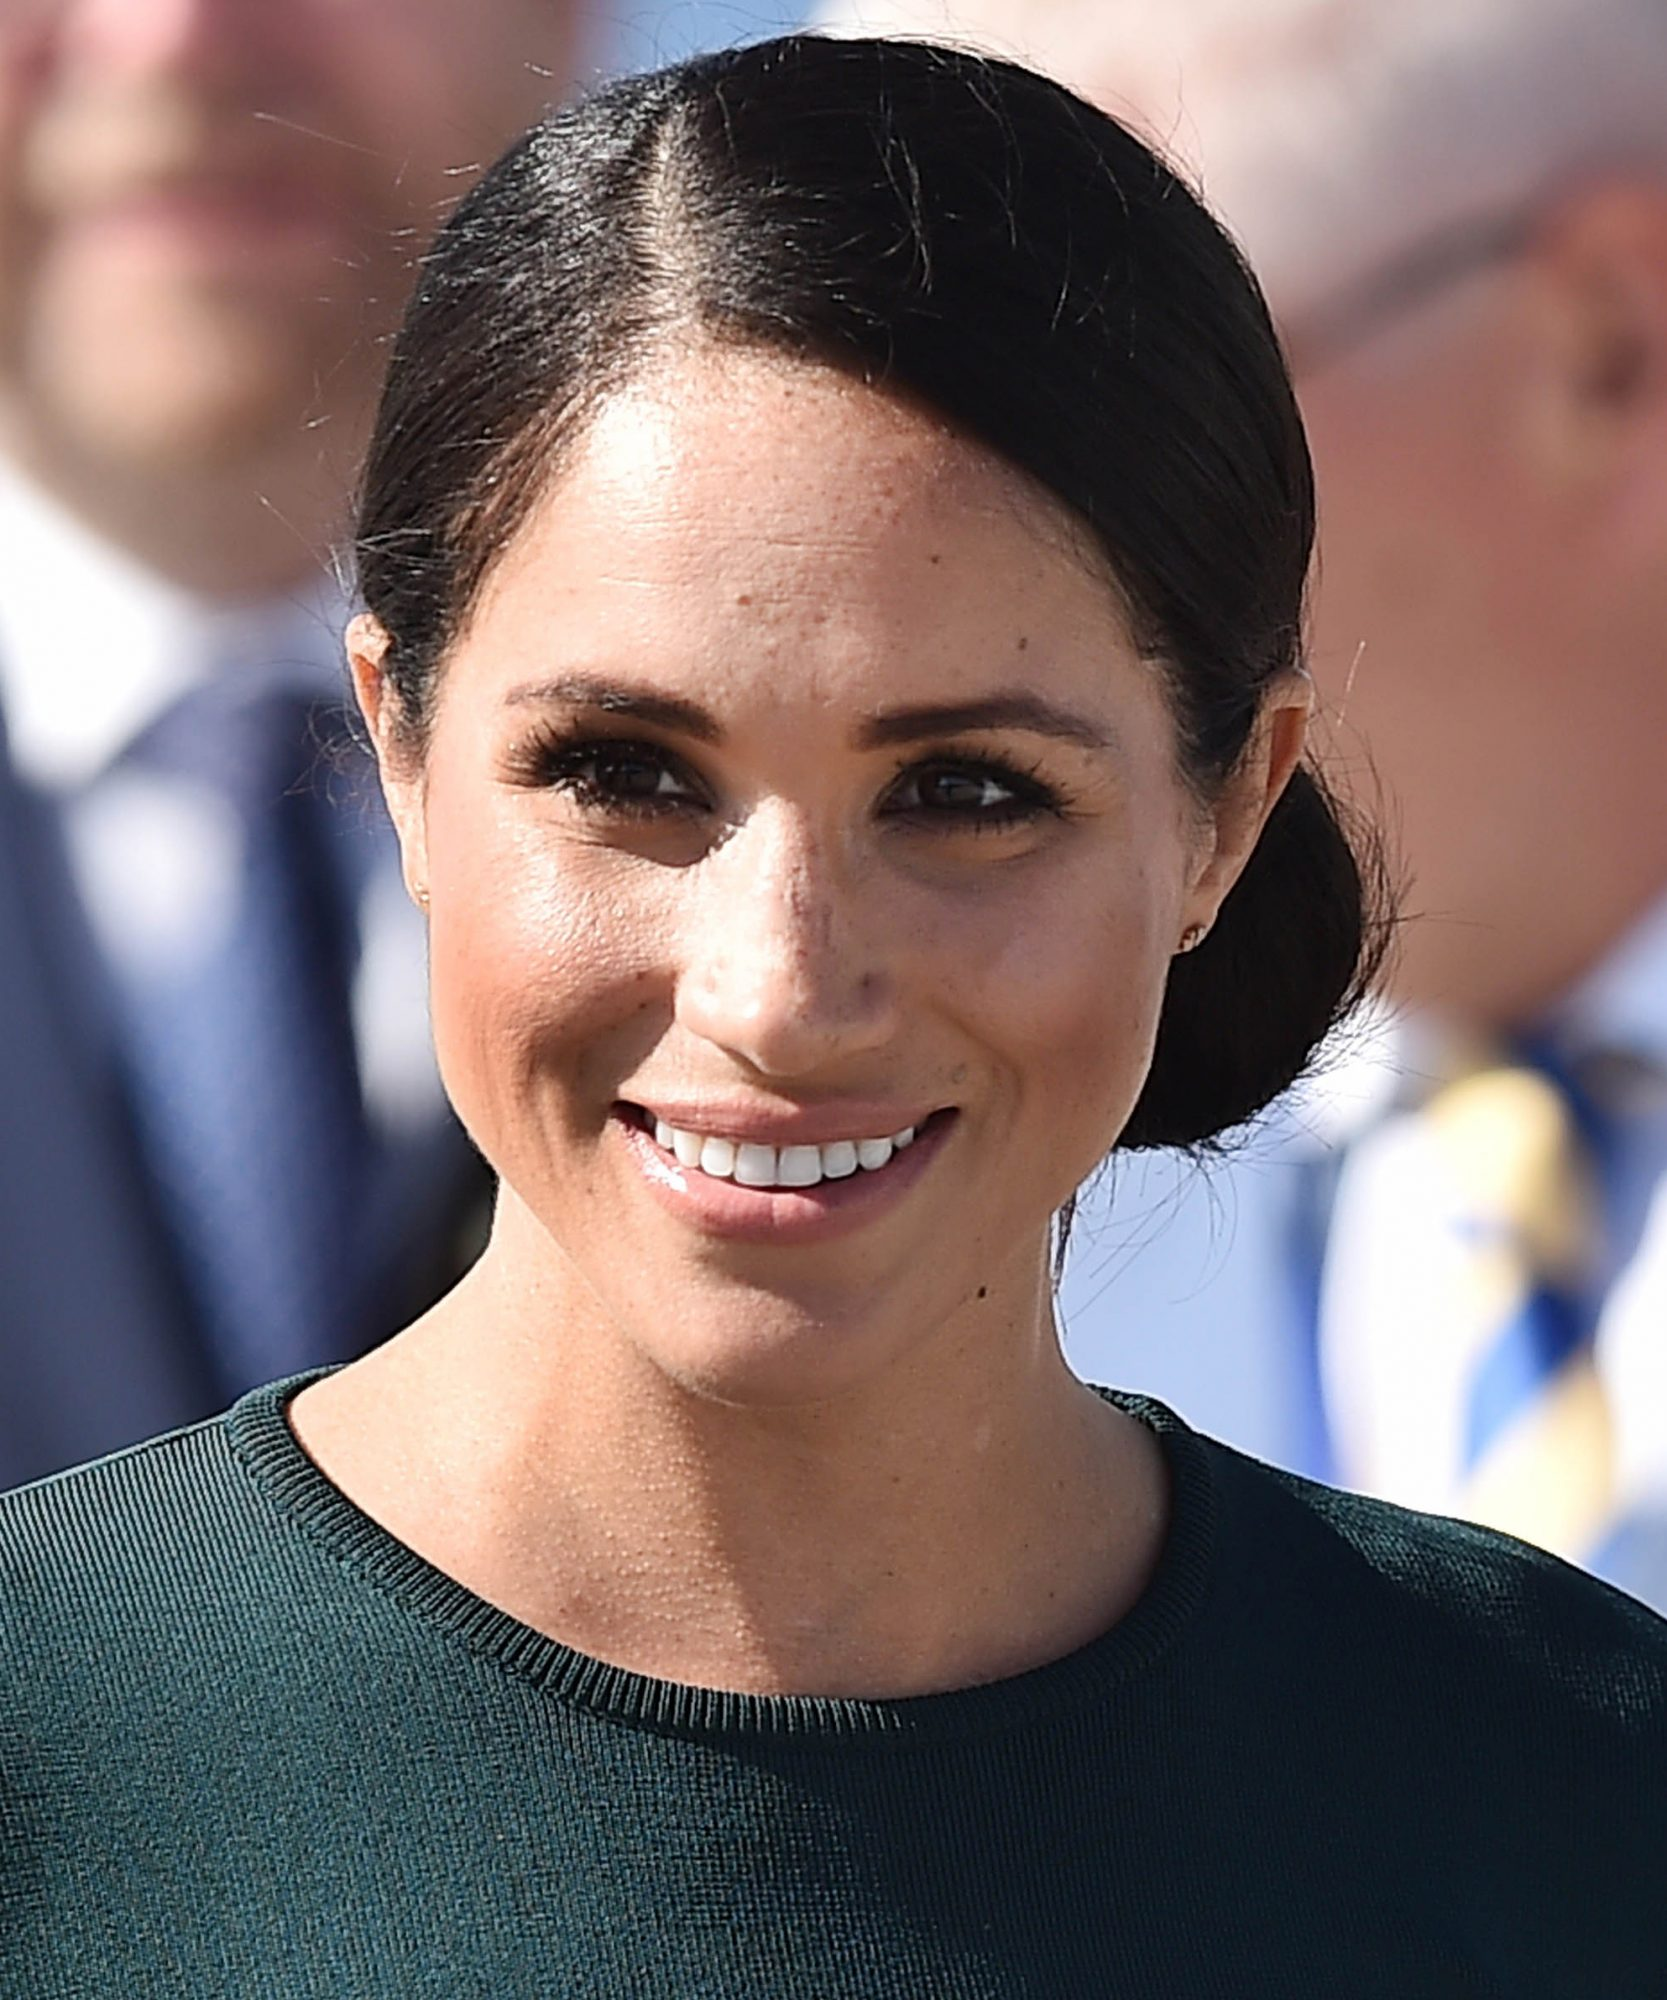 Arriving in Ireland on a Royal Visit